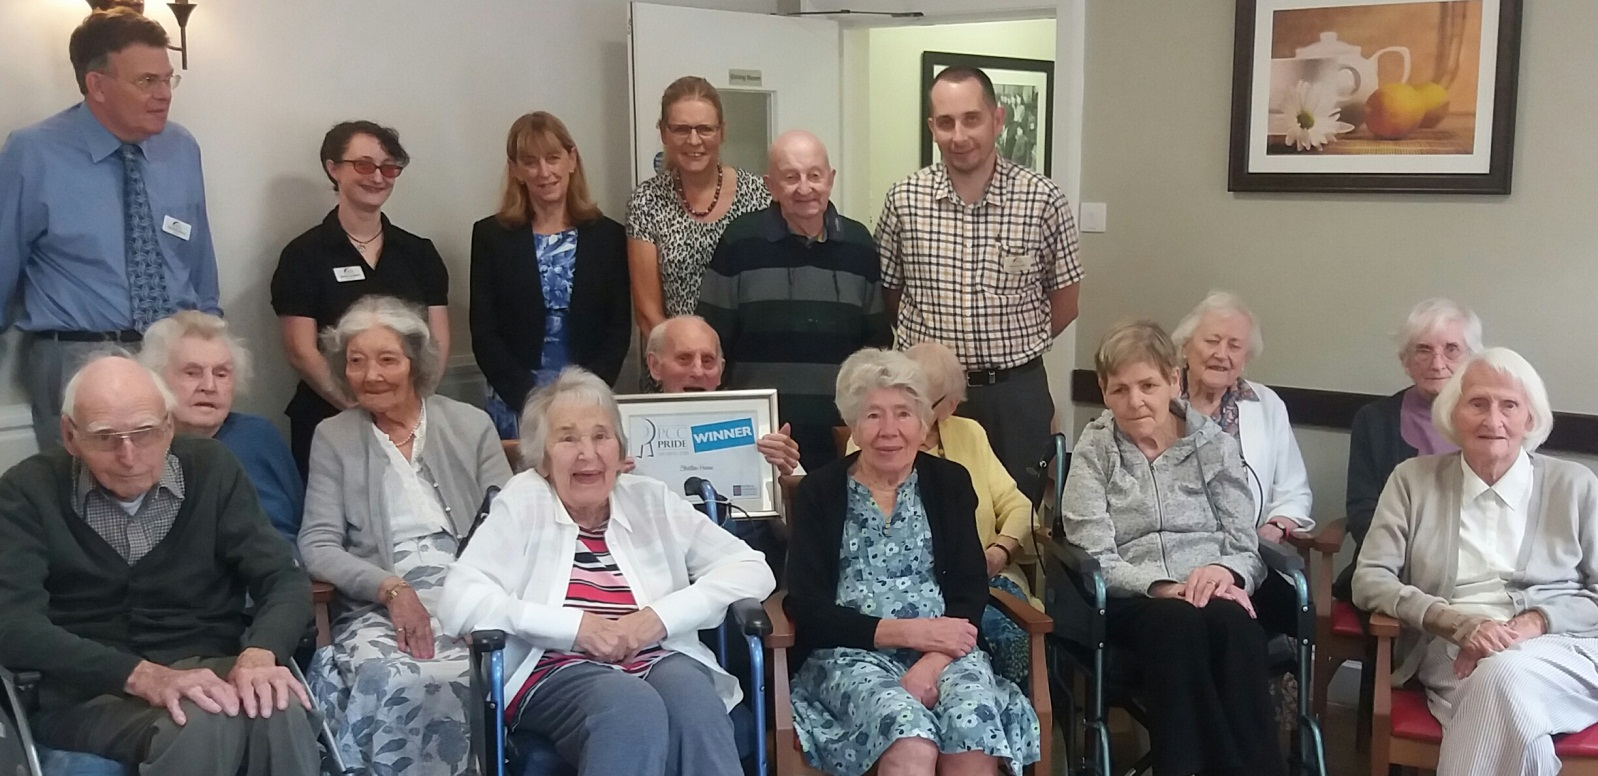 Stratton House residents receive Police and Crime Commissioner Award